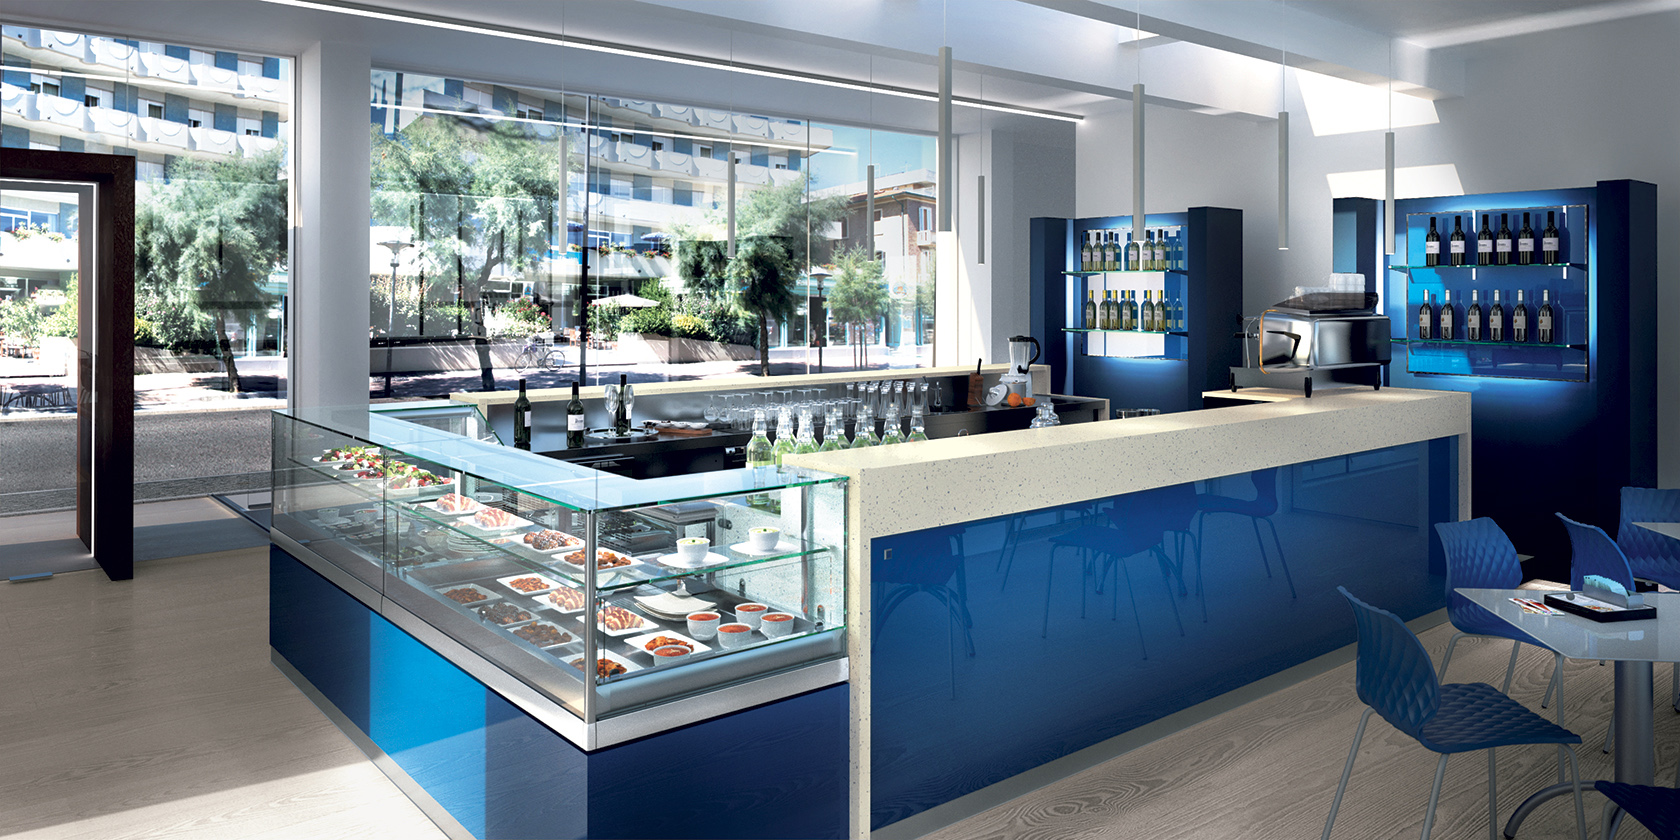 31 arredo design gelateria bar pasticceria new concept